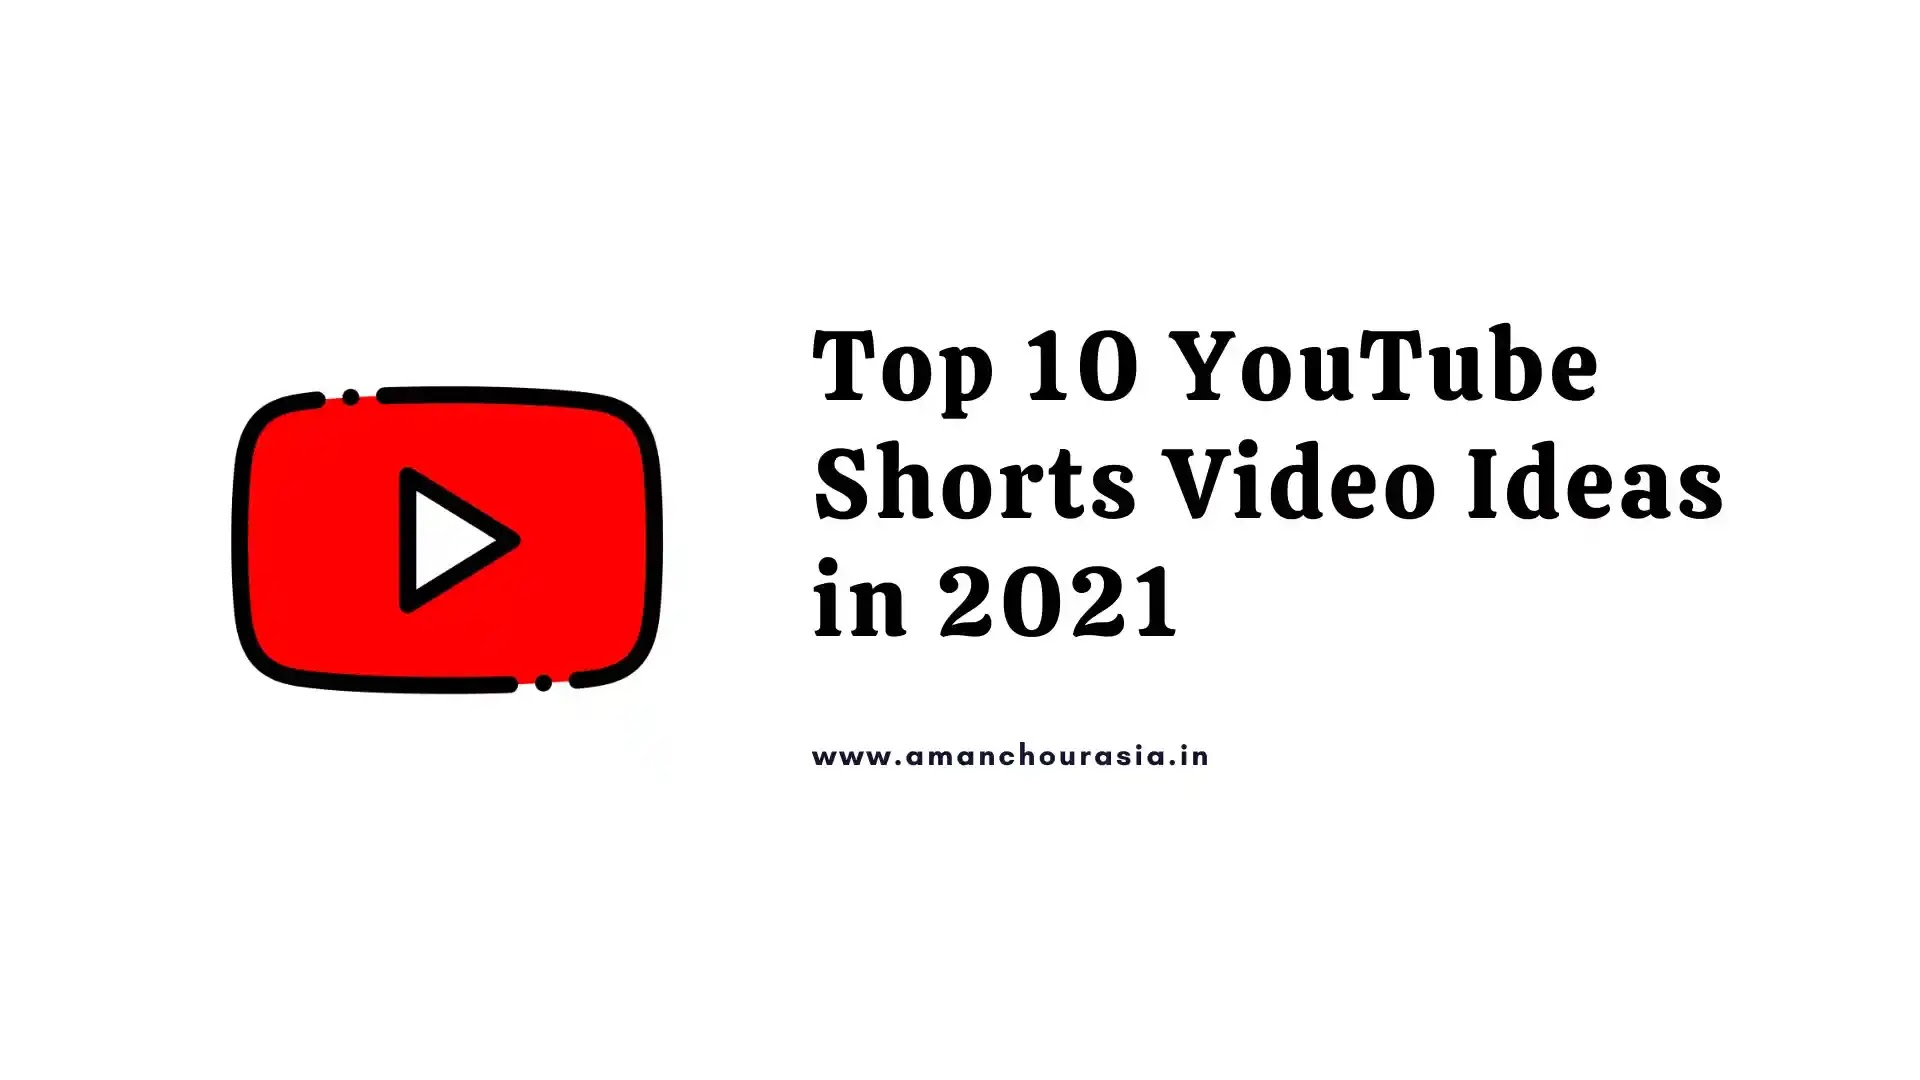 Top 10 YouTube Shorts Video Ideas in 2021